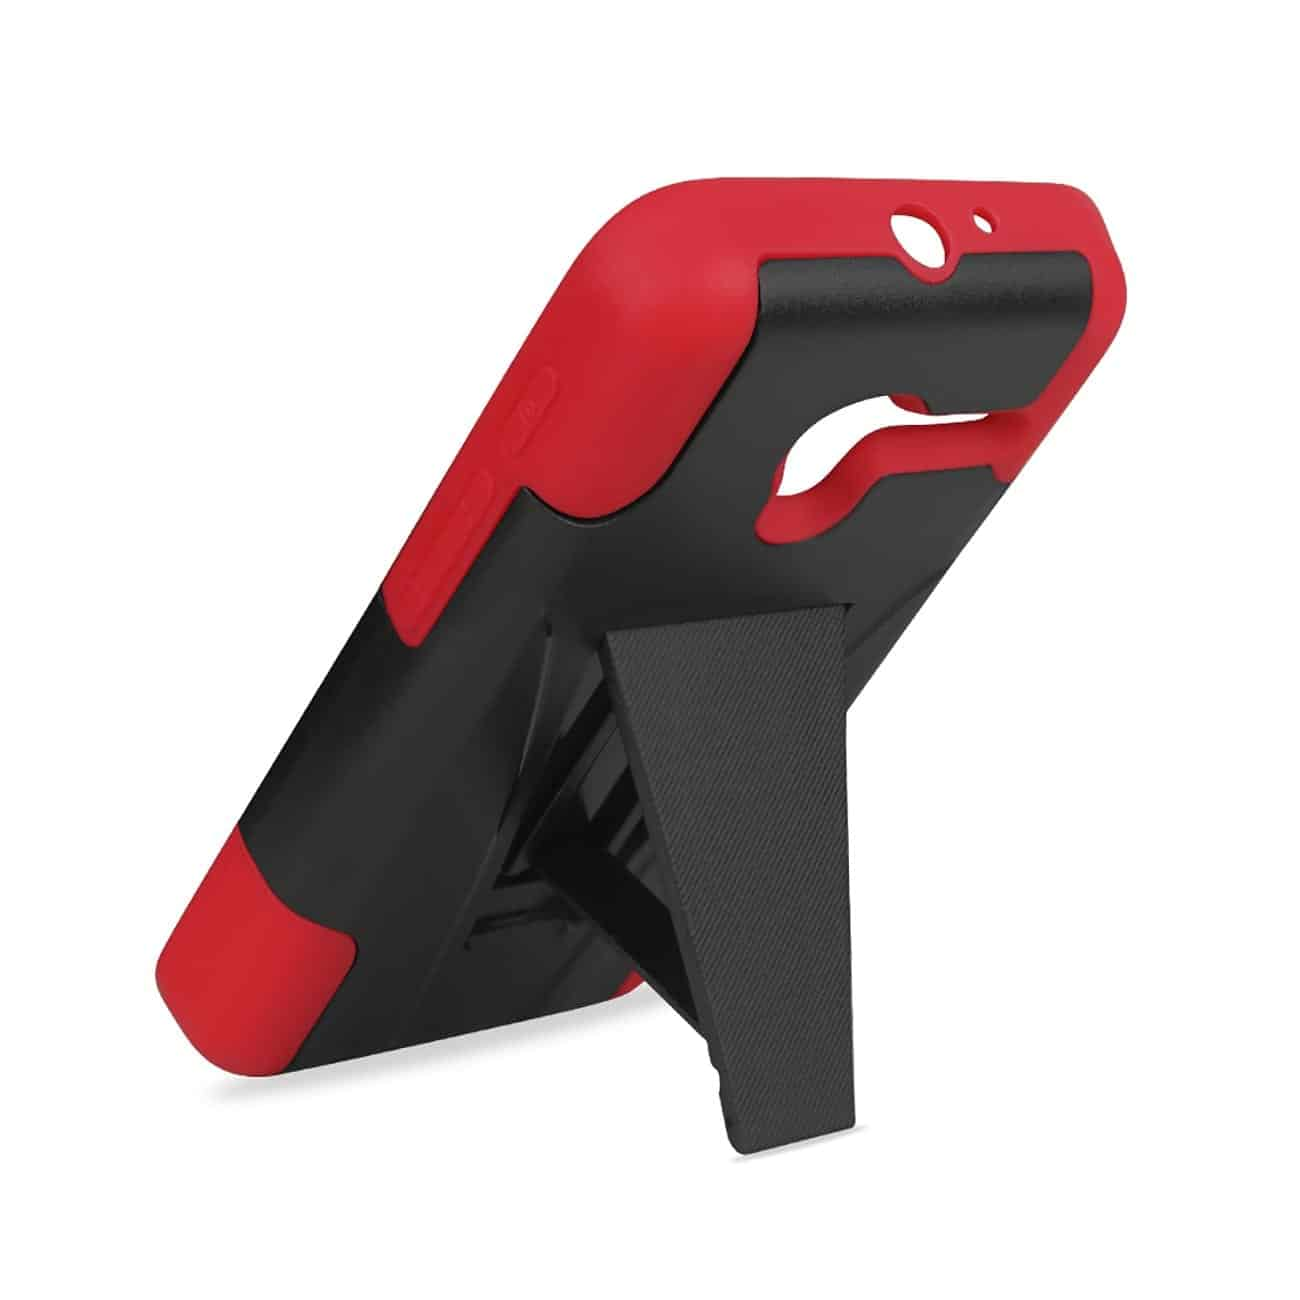 ALCATEL ONETOUCH PIXI 3 HYBRID HEAVY DUTY CASE WITH KICKSTAND IN RED BLACK